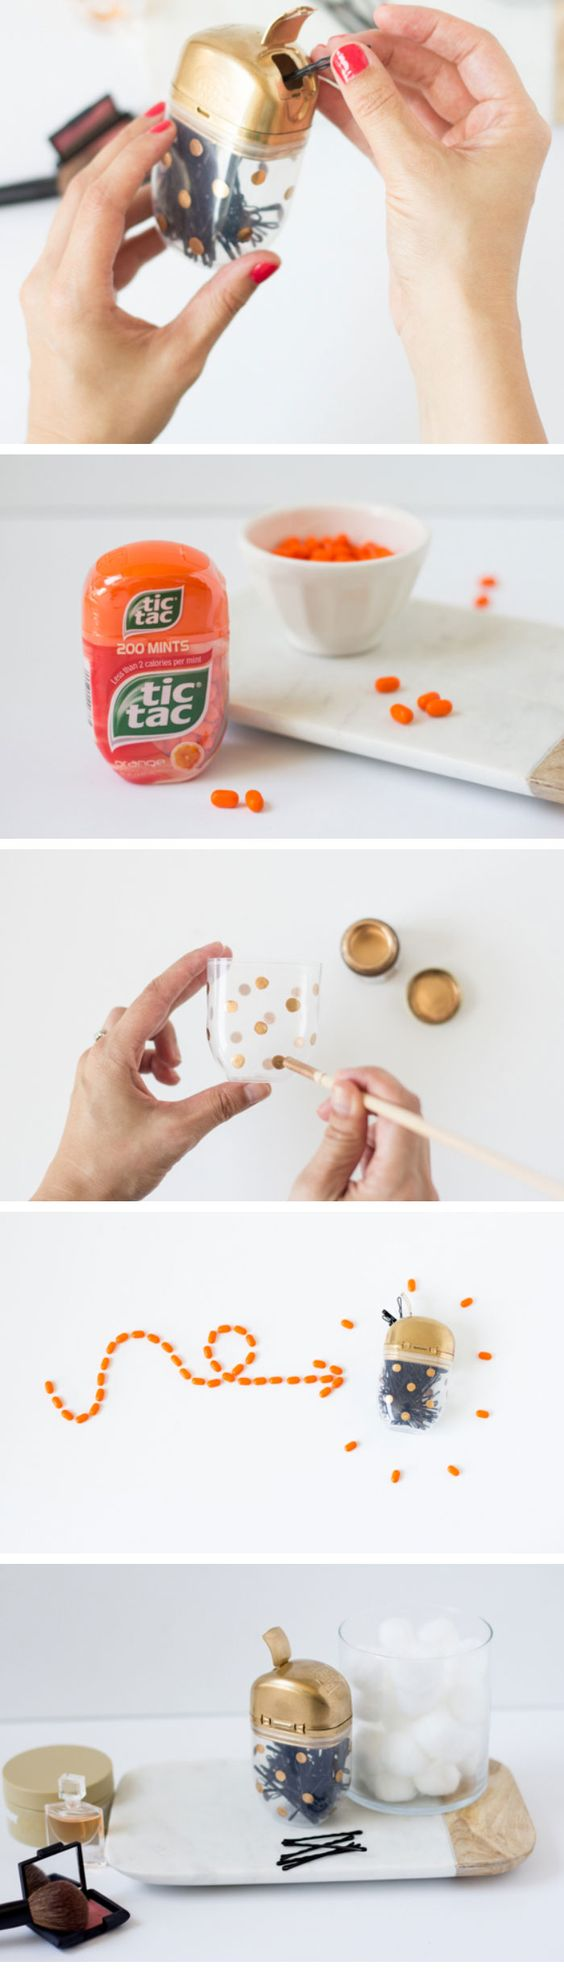 Organize your Bobby Pins in a Funky Tic Tac Case   Click Pic for 25 Simple Life Hacks Every Girl Should Know   Household Tips and Tricks for Life